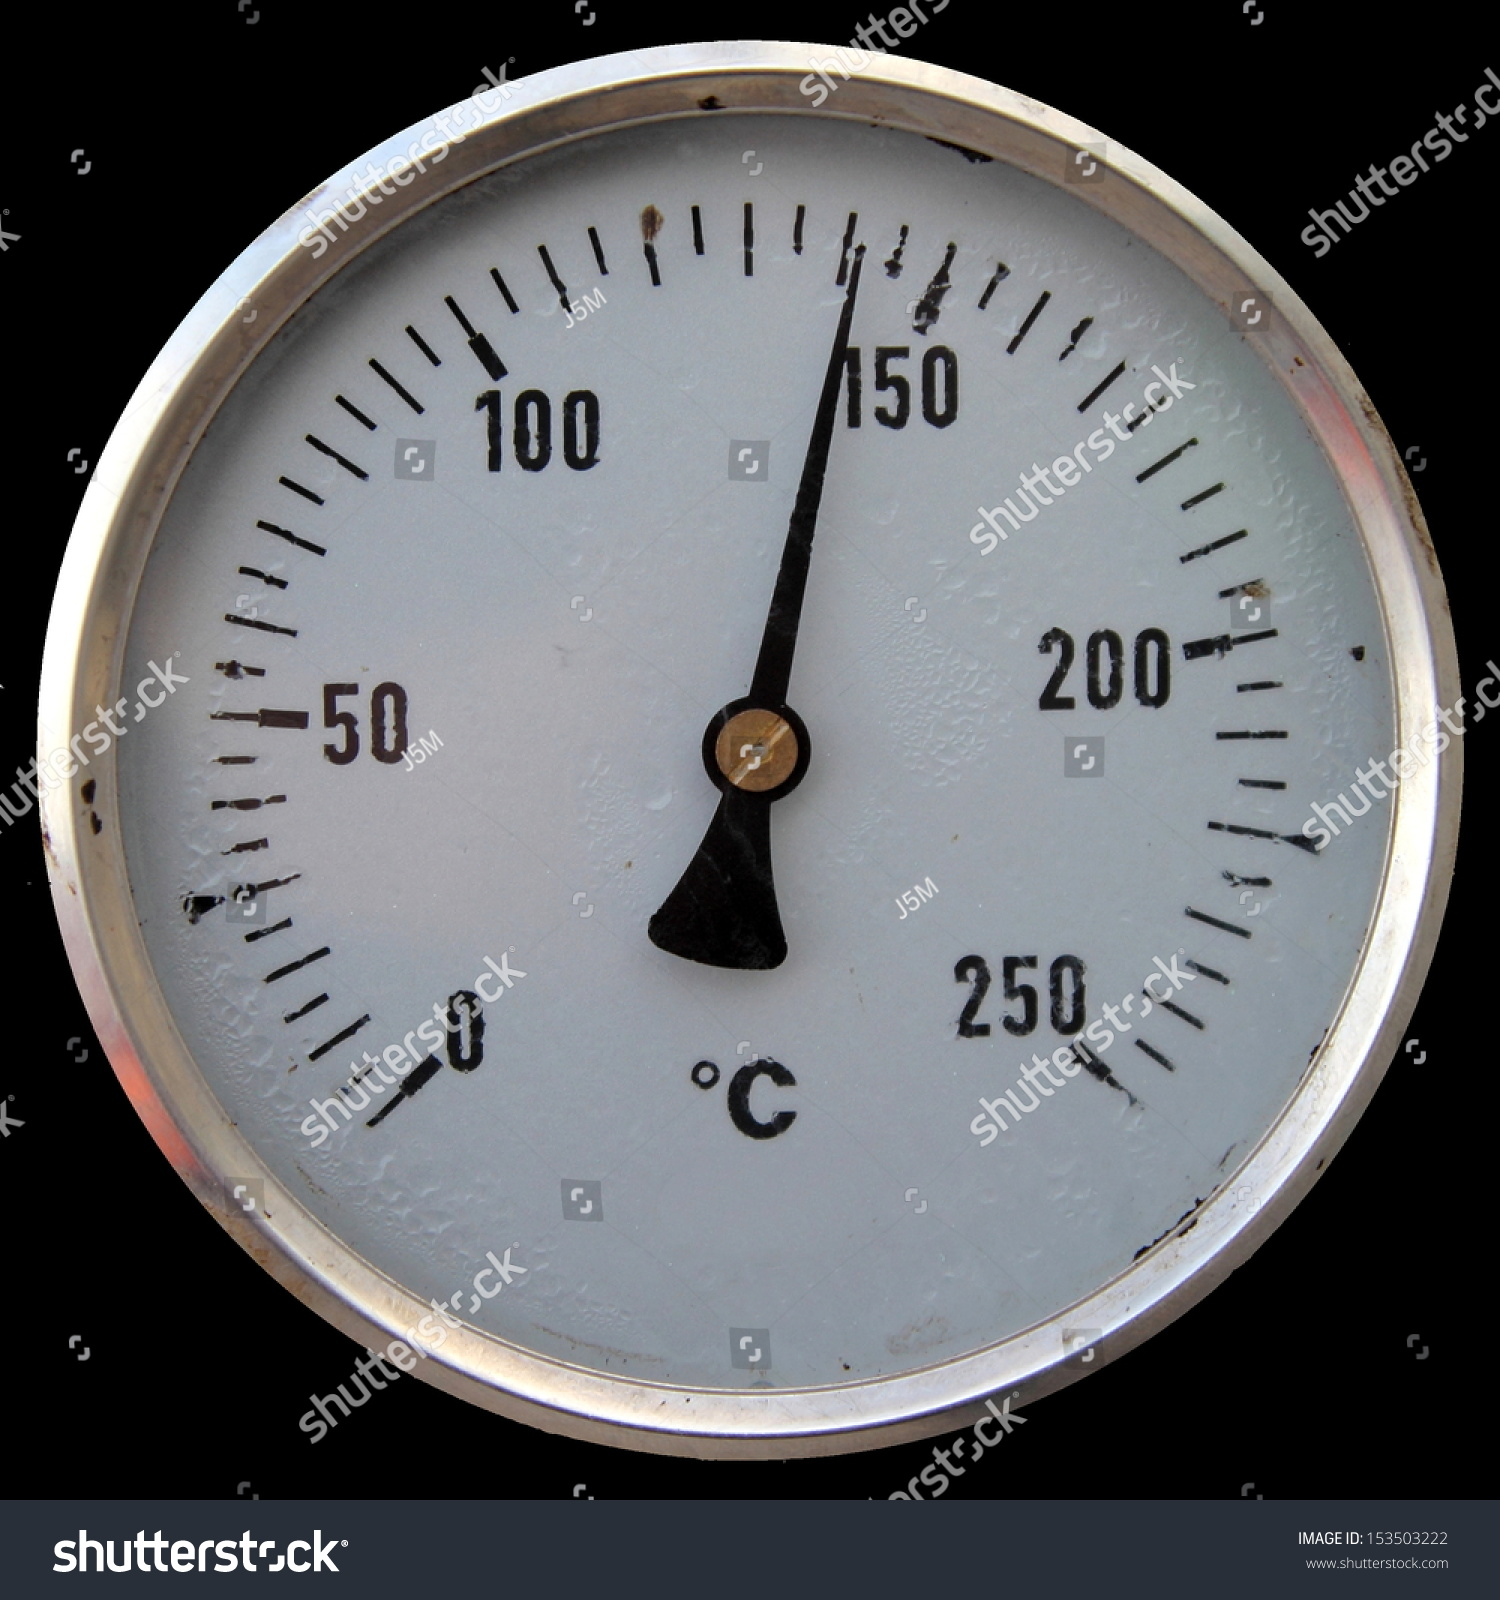 stock-photo-industrial-thermometer-15350